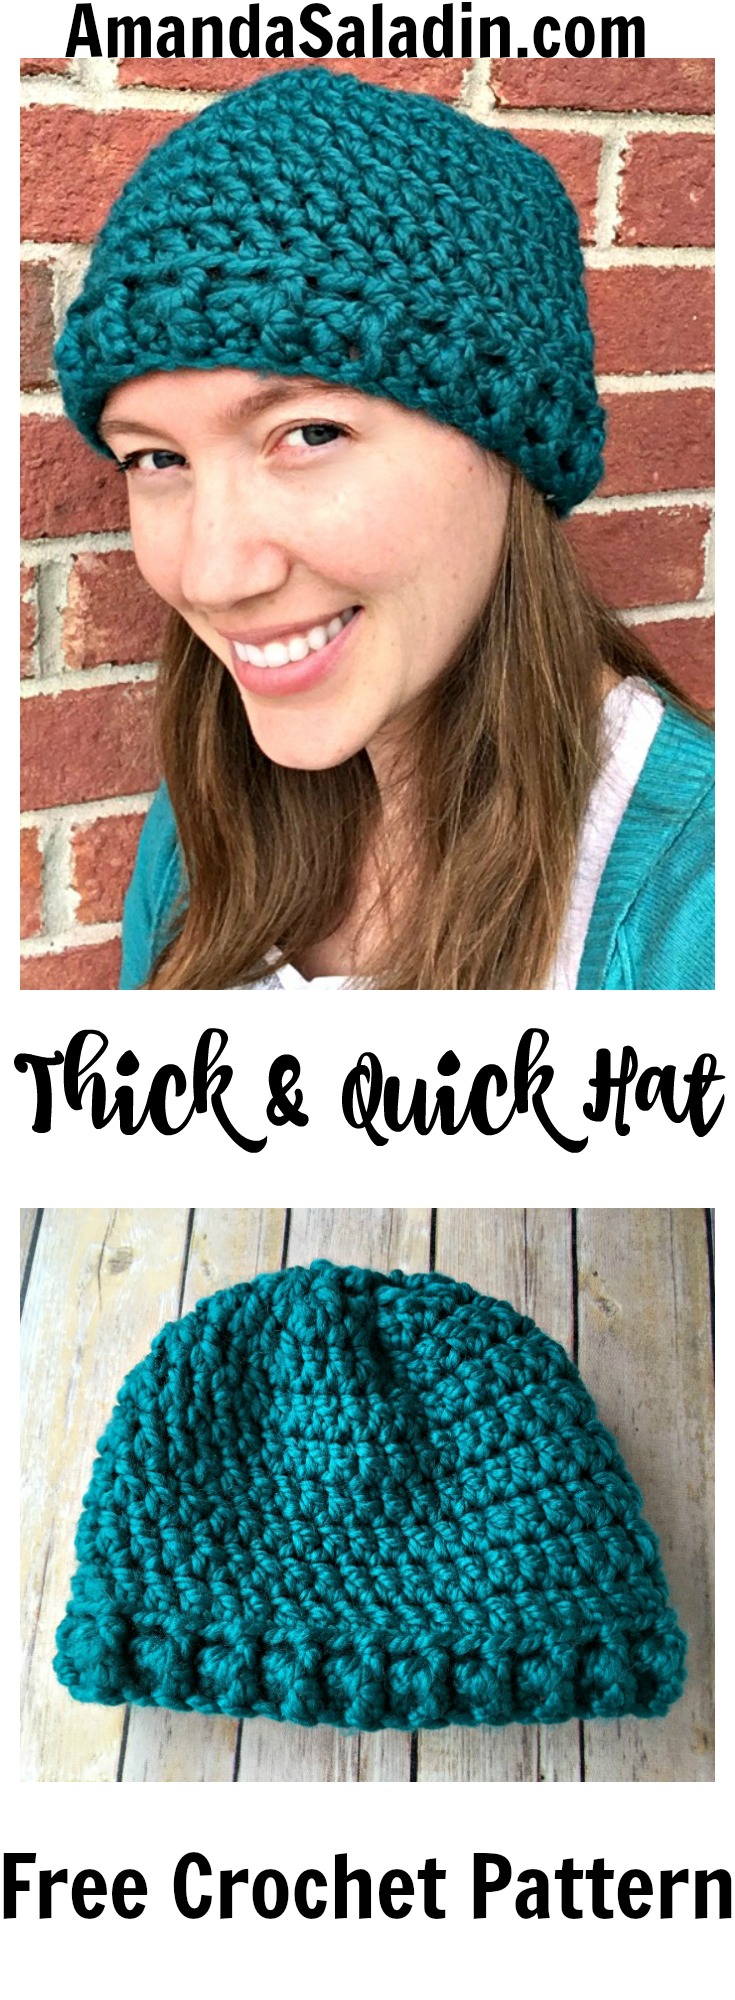 Free Crochet Pattern - You can make this in an hour! So easy!